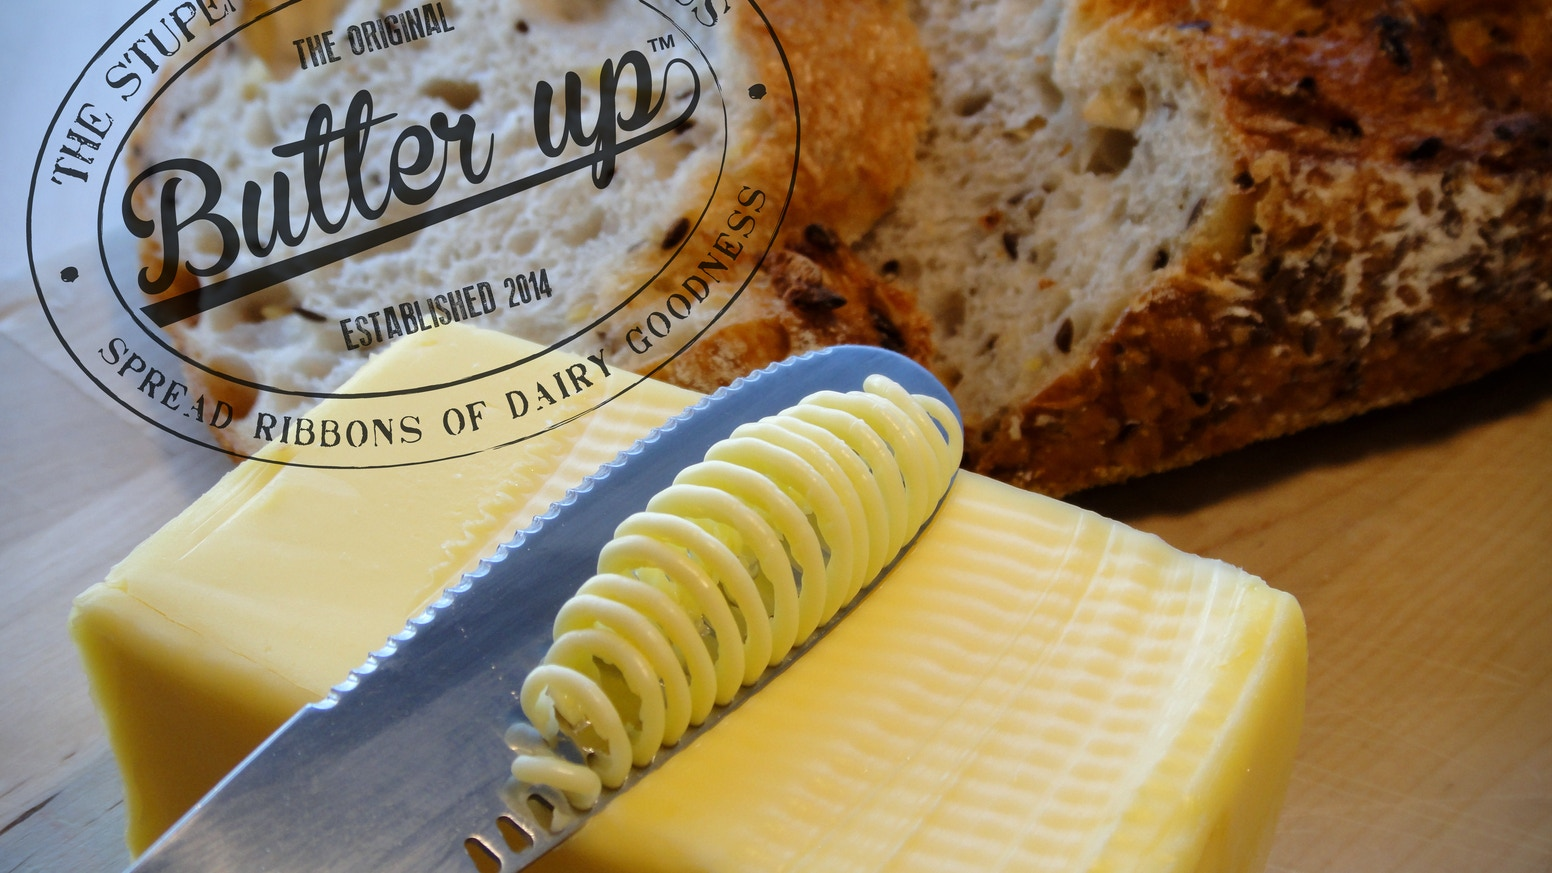 Enjoy real butter straight from the fridge. The ButterUp knife softens  butter in spectacular form!